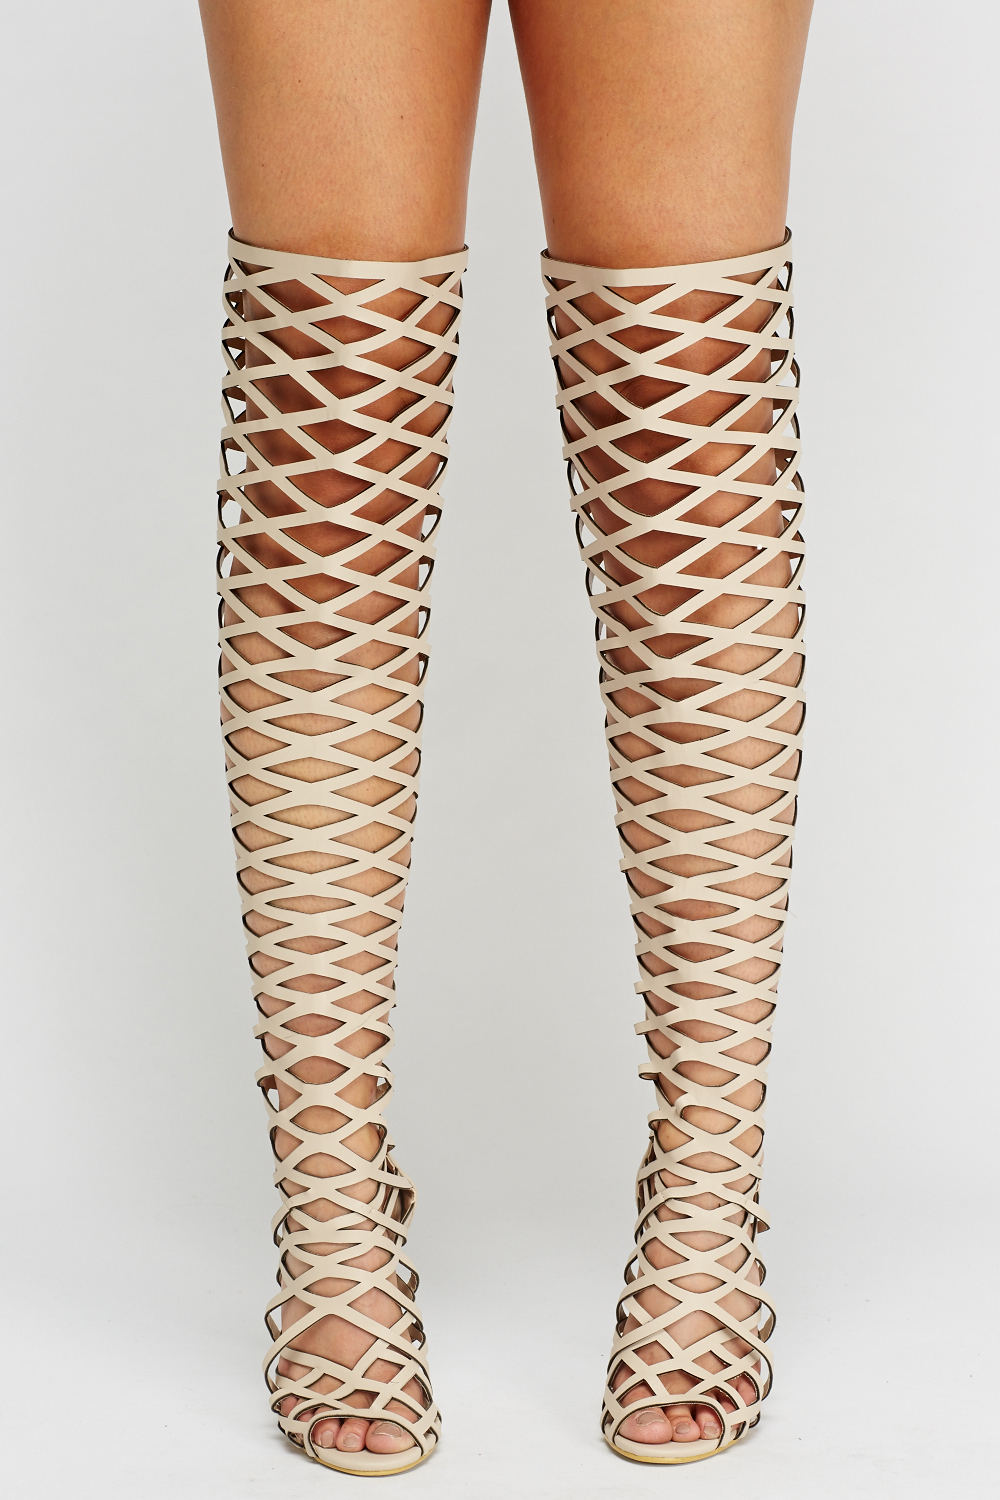 ac1e14b5809 Laser Cut Over The Knee Peep Toe Boots - Just £5